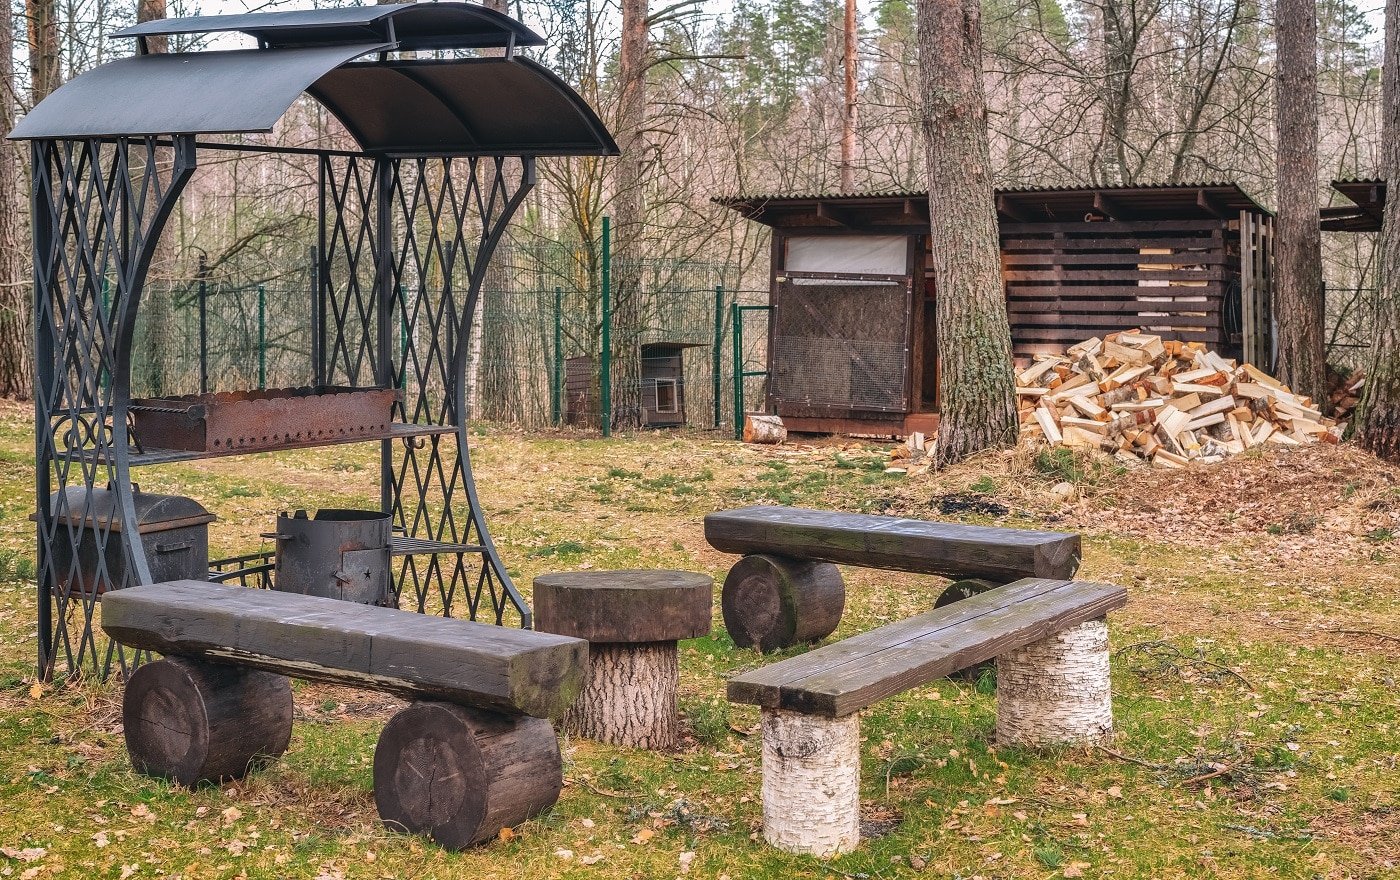 Antique metal brazier made of wrought iron with a beautiful pattern on the background of wood and trees. Table and benches made of logs